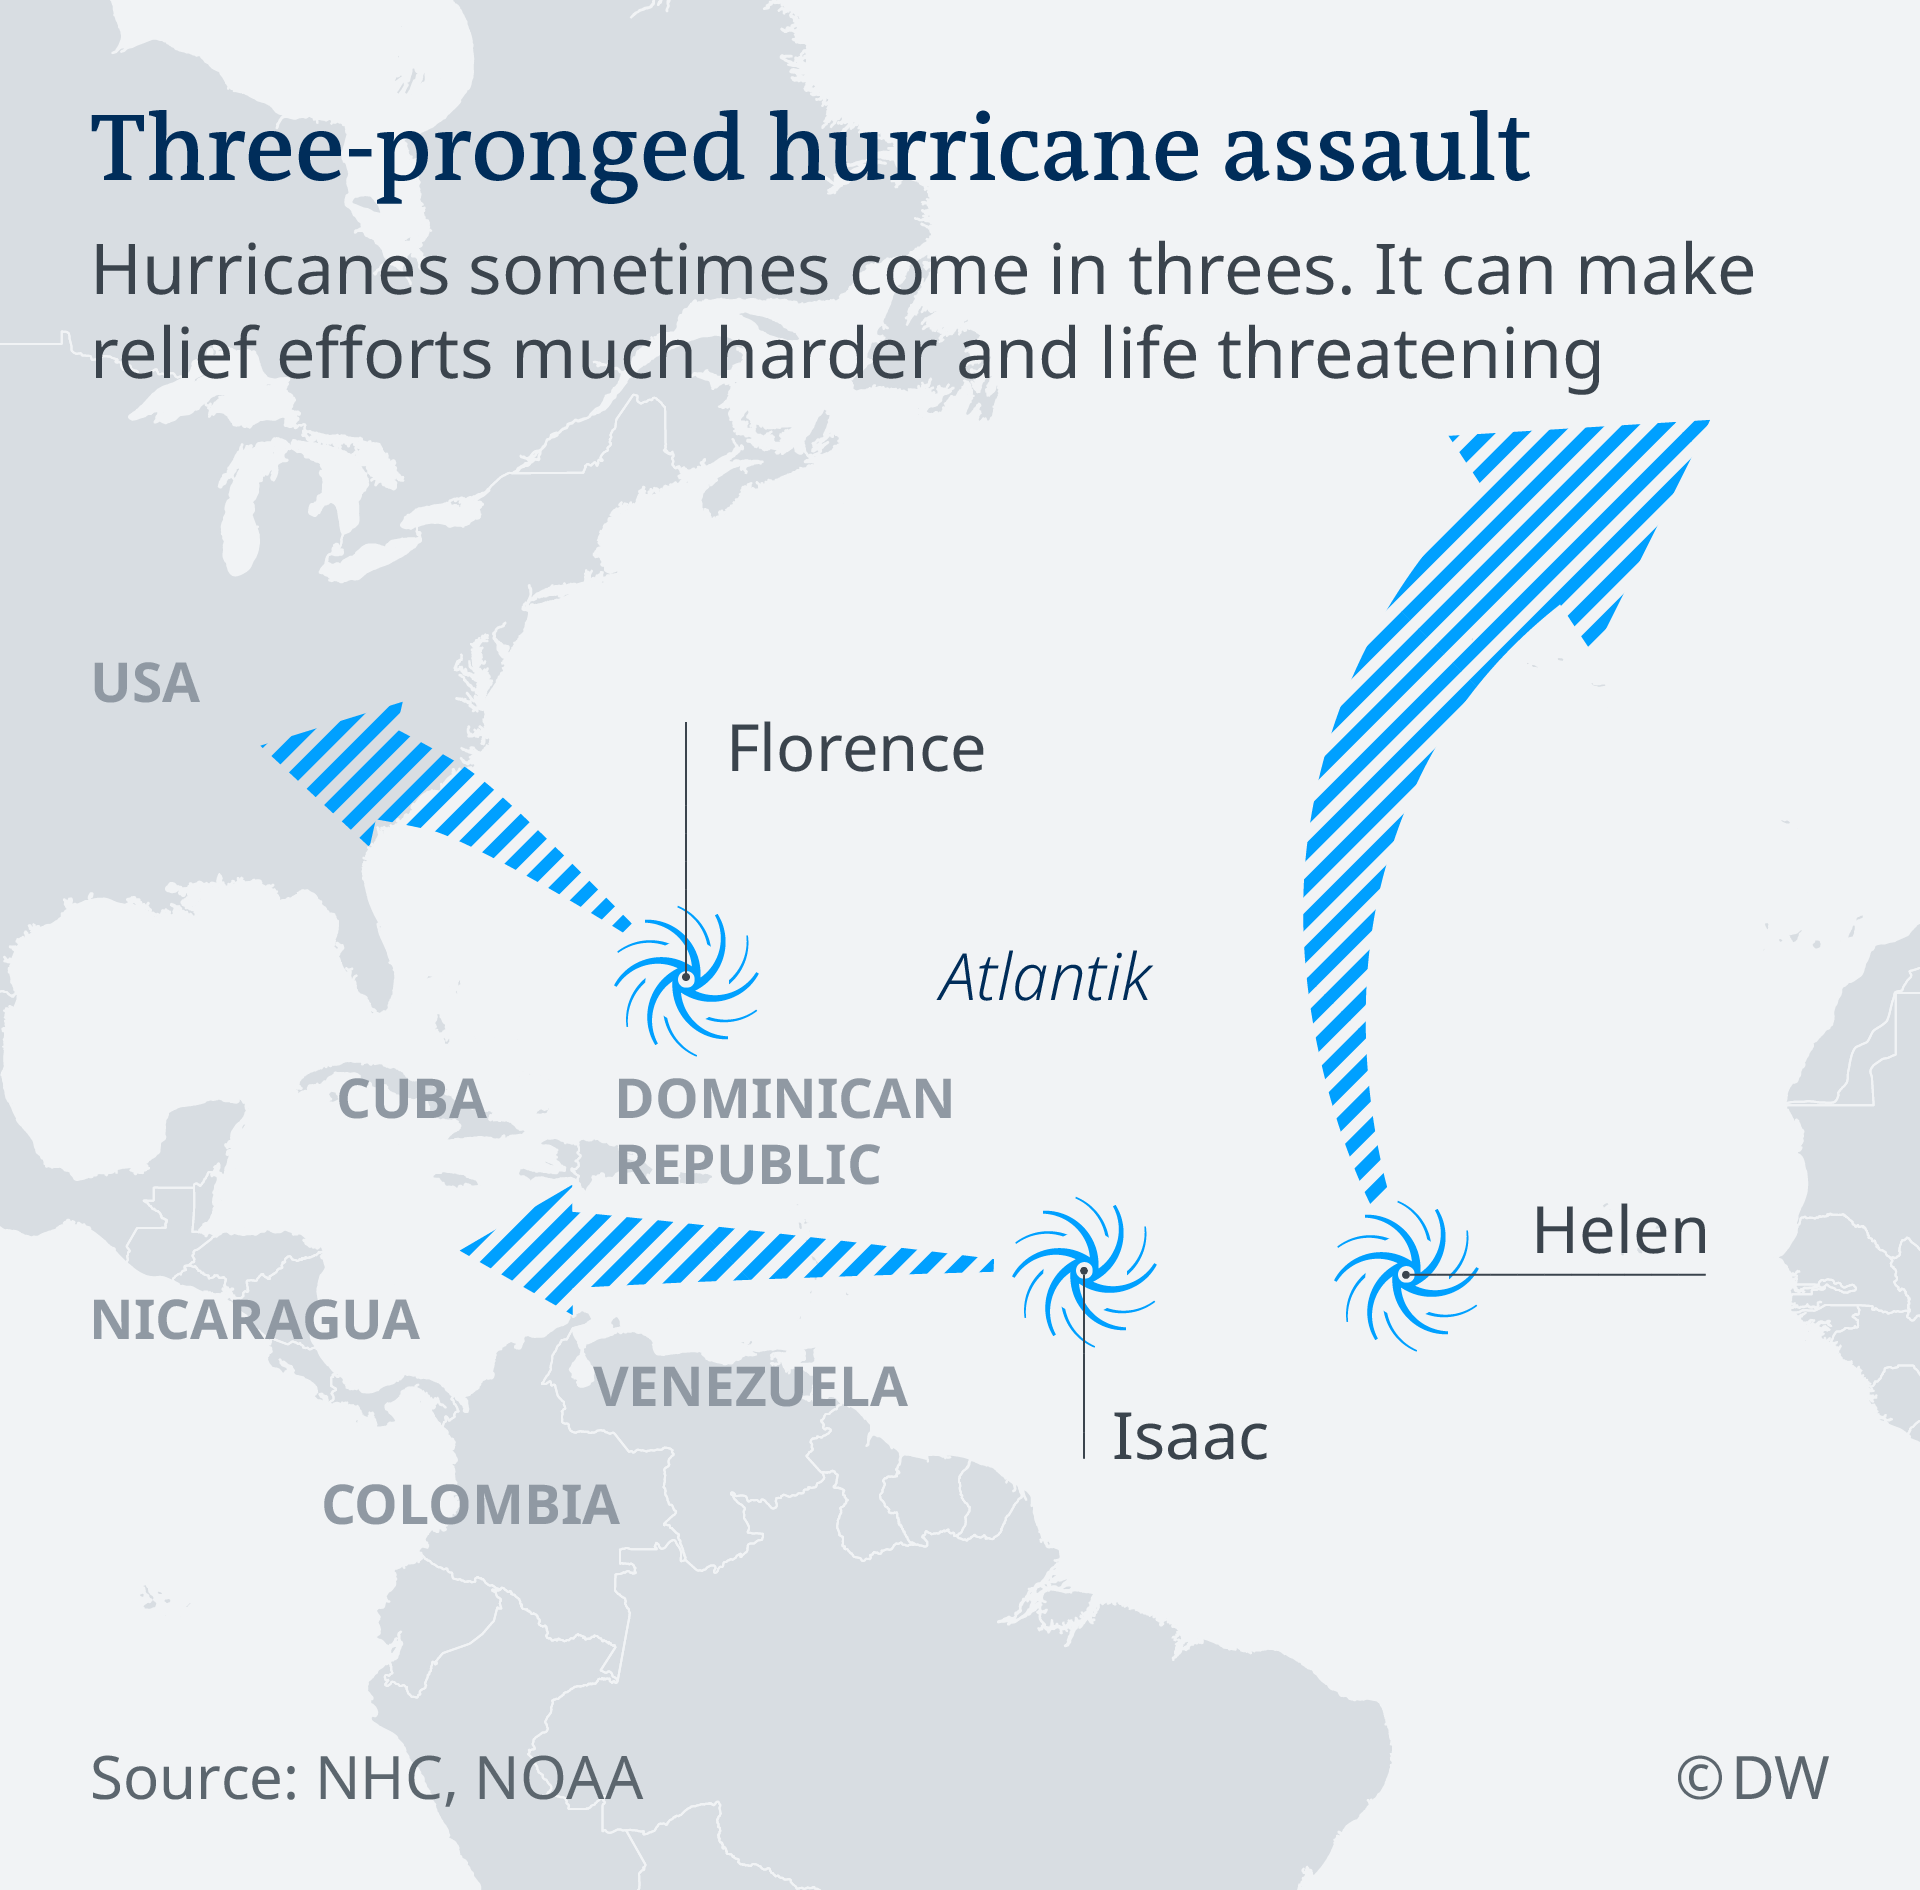 Three-pronged hurricane assault infographic